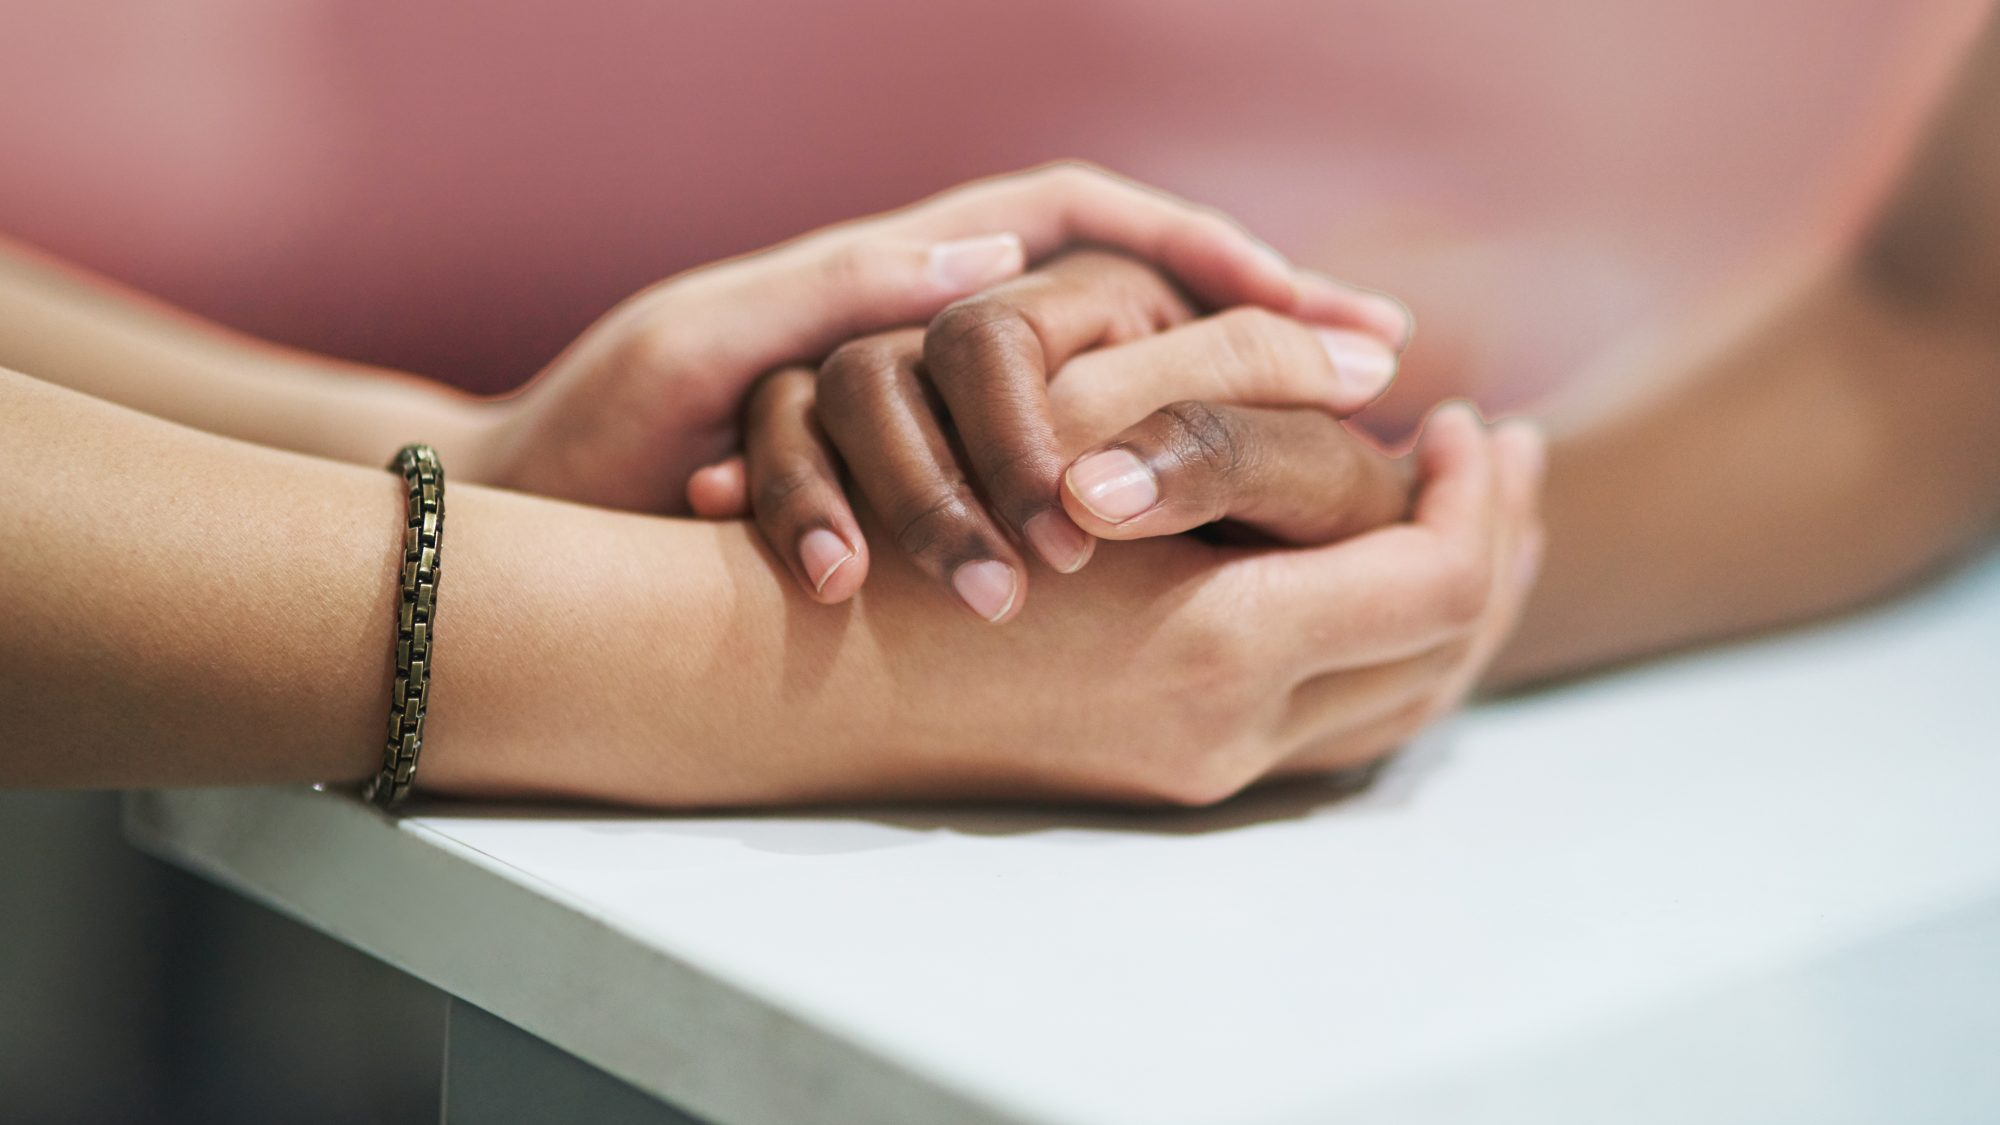 Questions to Ask Your Partner to Build Relationship Intimacy: close up of two people holding hands